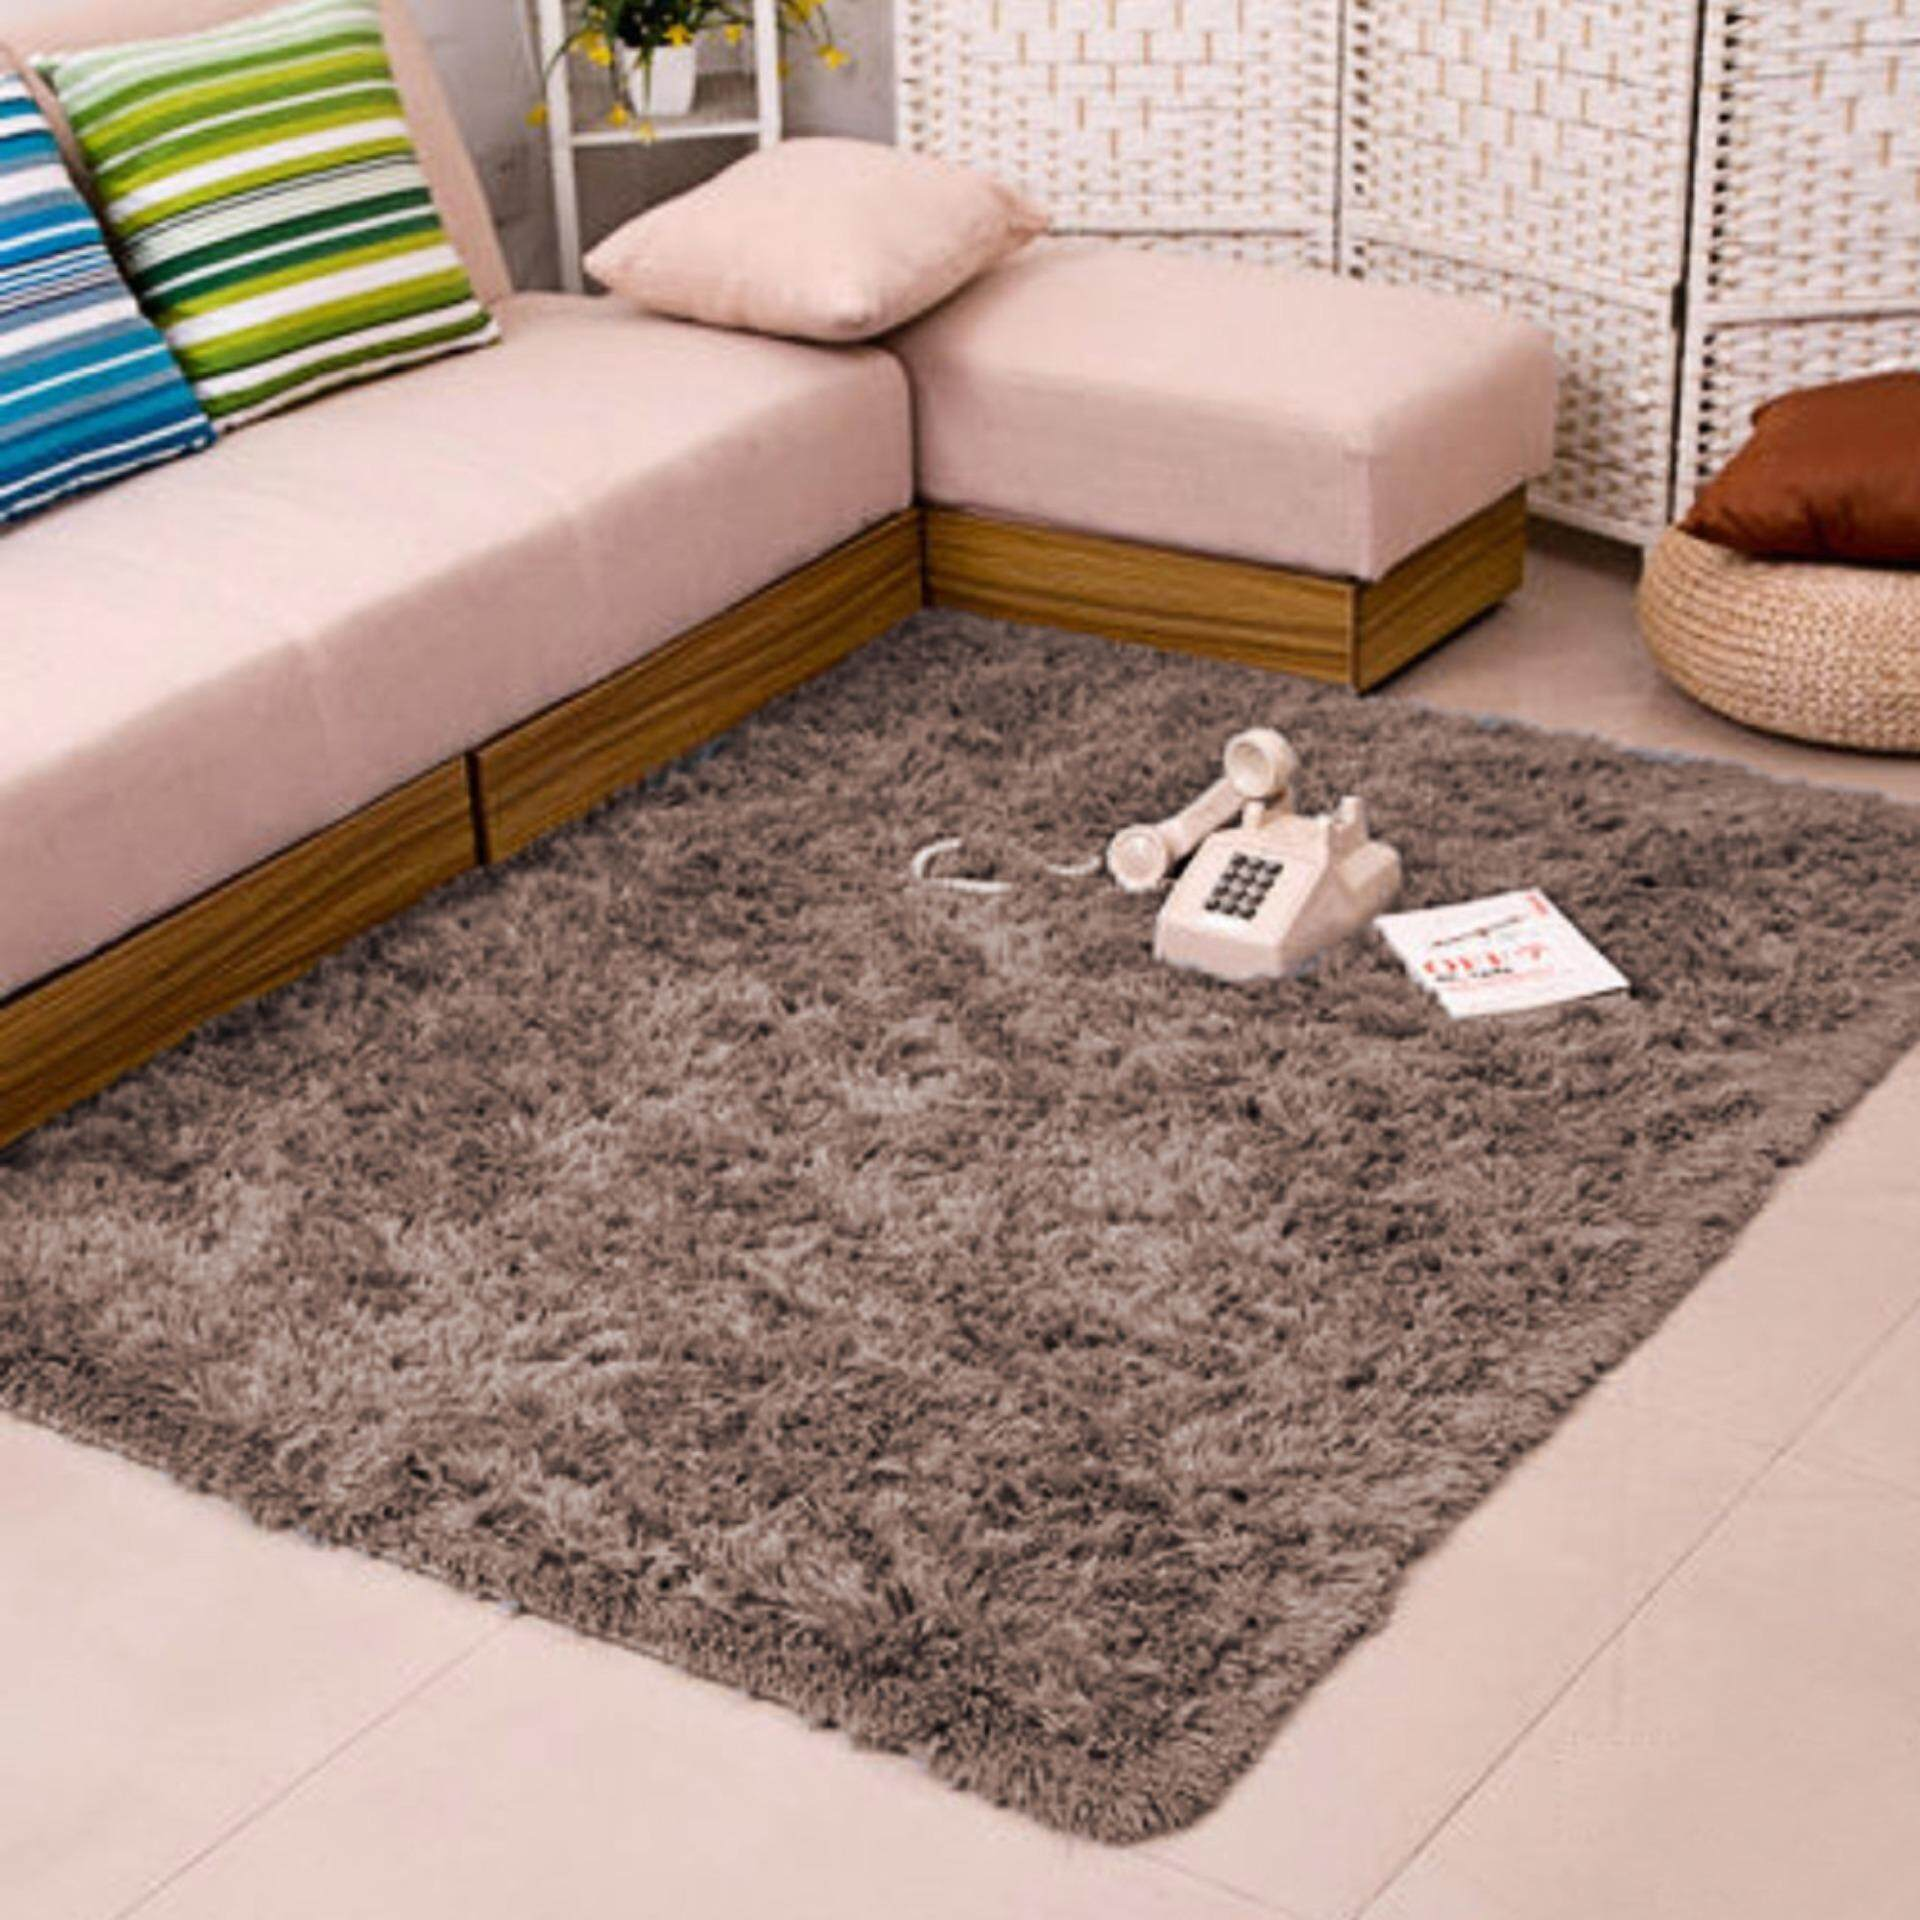 1.2m x 1.6m Fluffy Fashion Modern Floor Area Rug Carpet Mat for Living Room Bedroom Home Accessory Grey